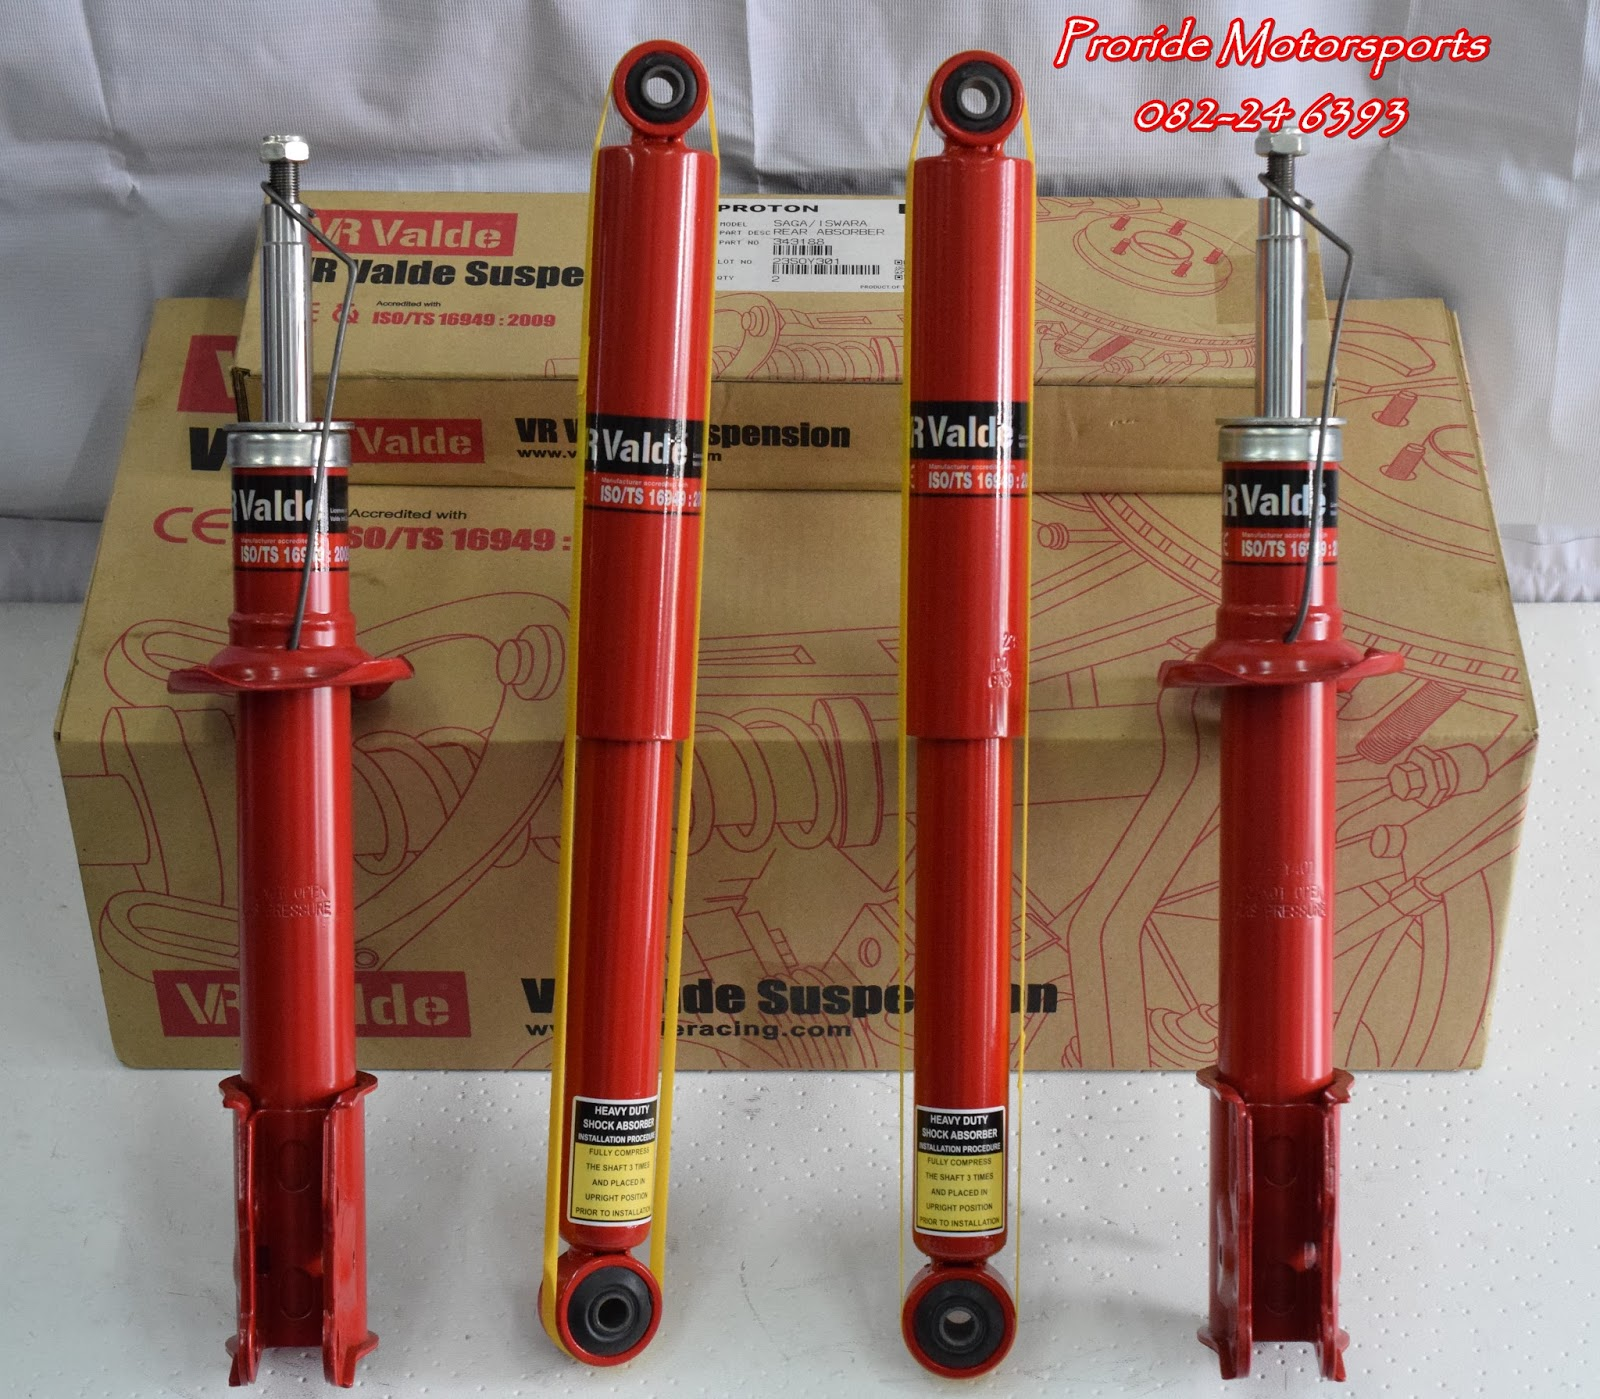 VR Valde Performance Shock Absorber | Pro-ride Motorsports